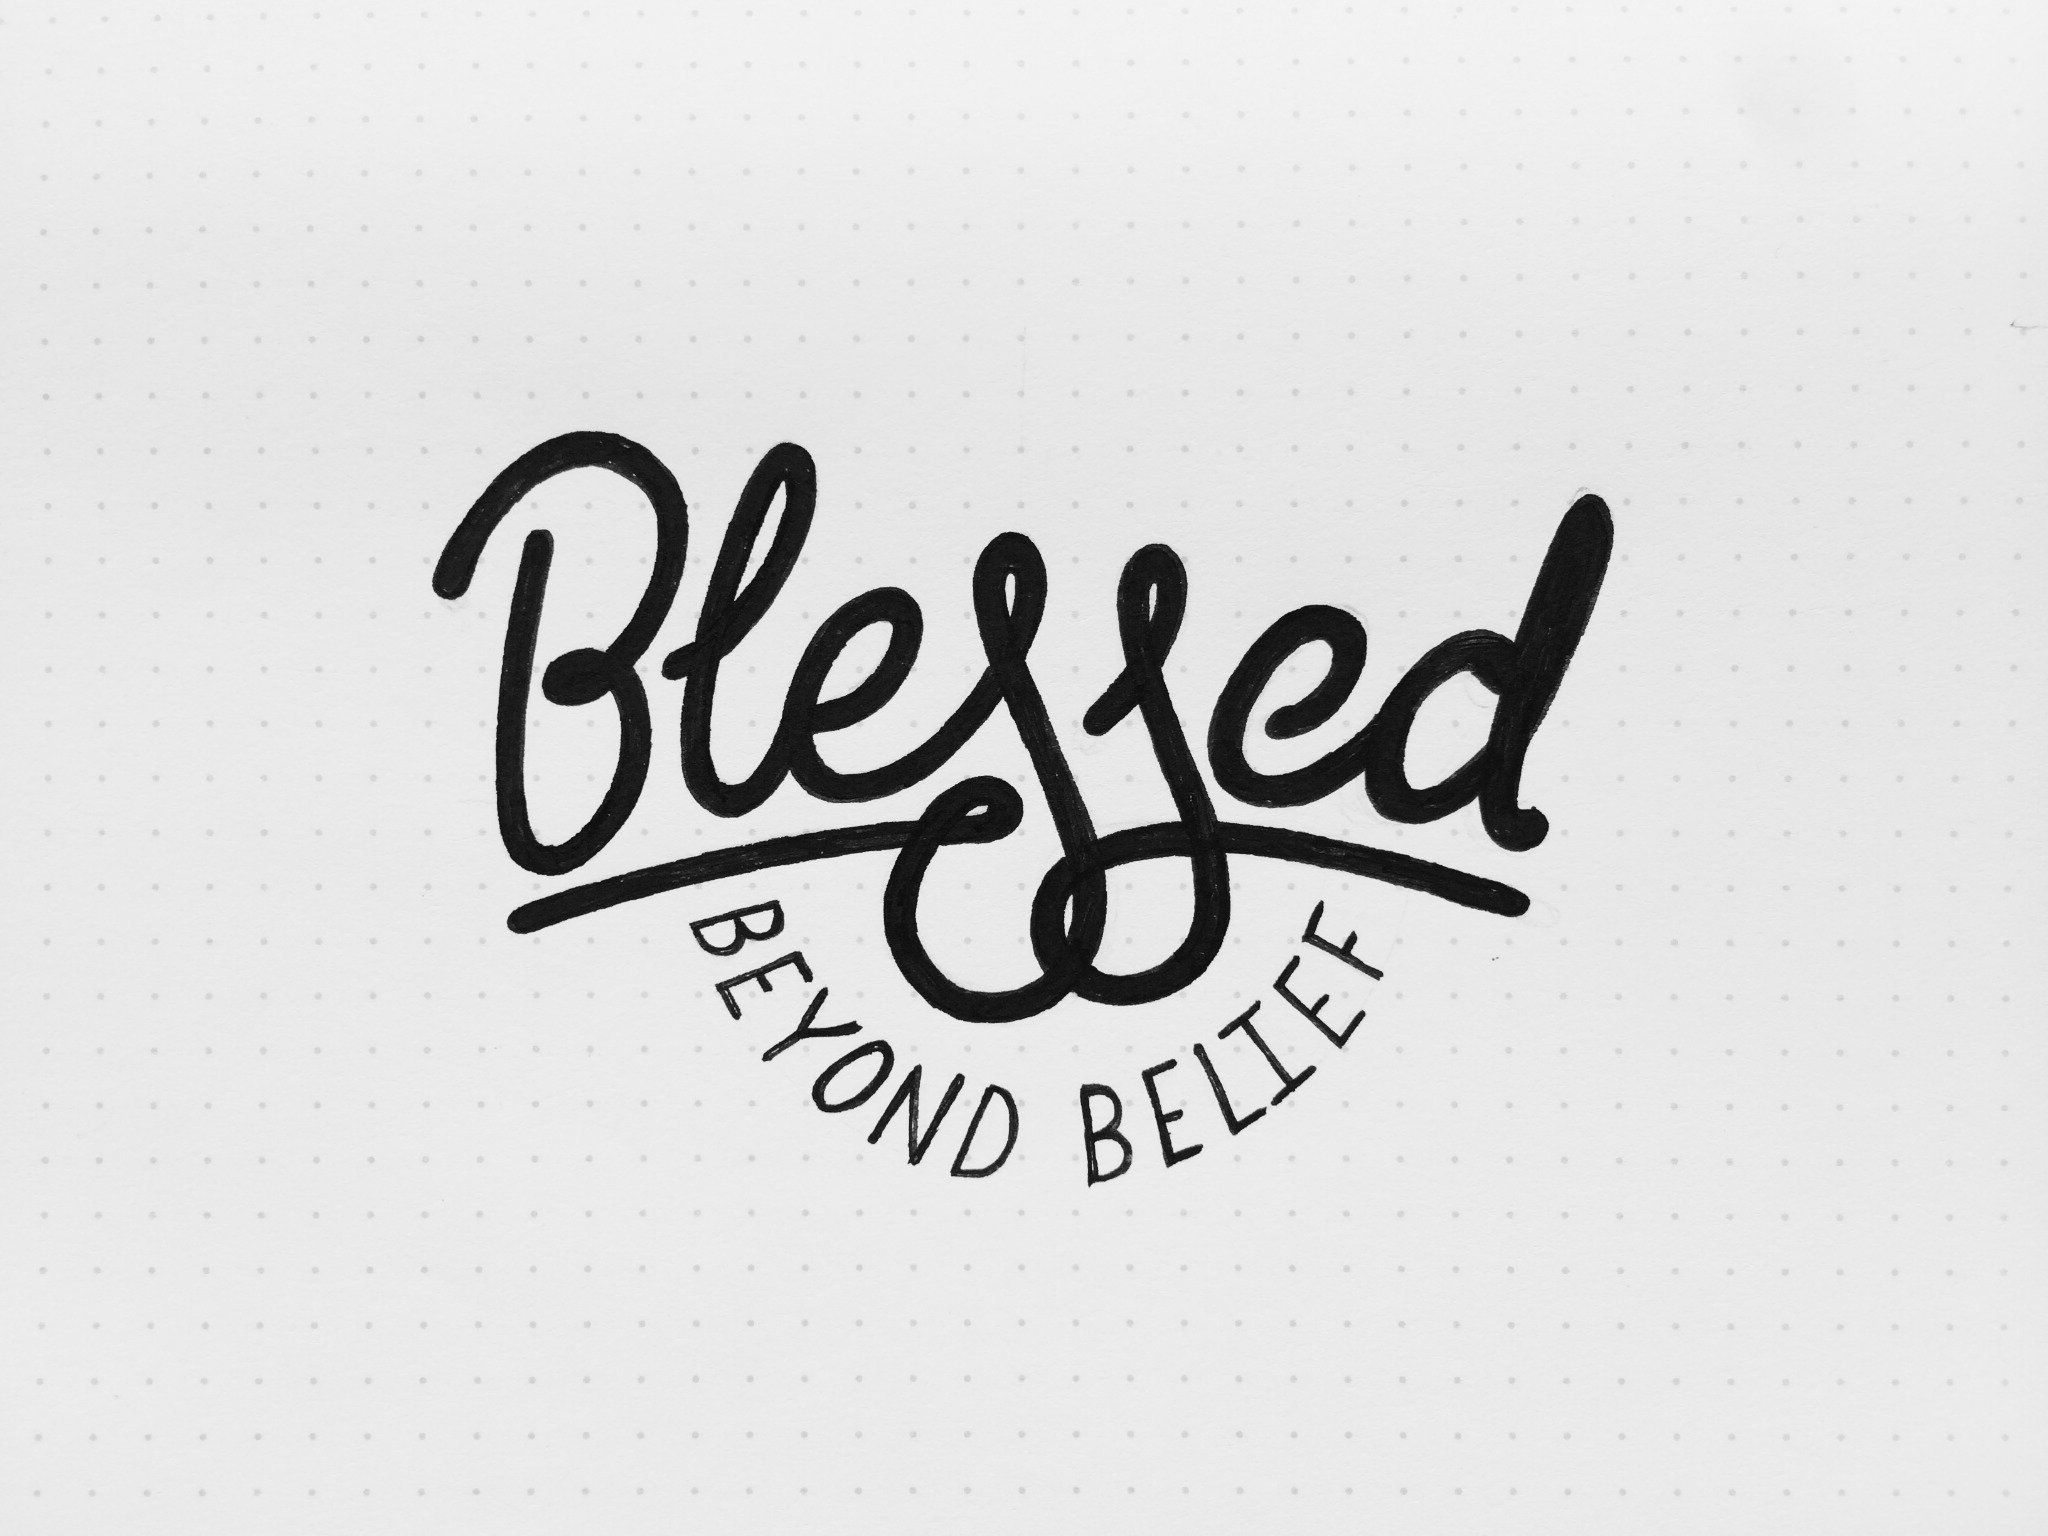 3 Typetuesdays Blessed Beyond Belief By Bob Ewing Tattoo